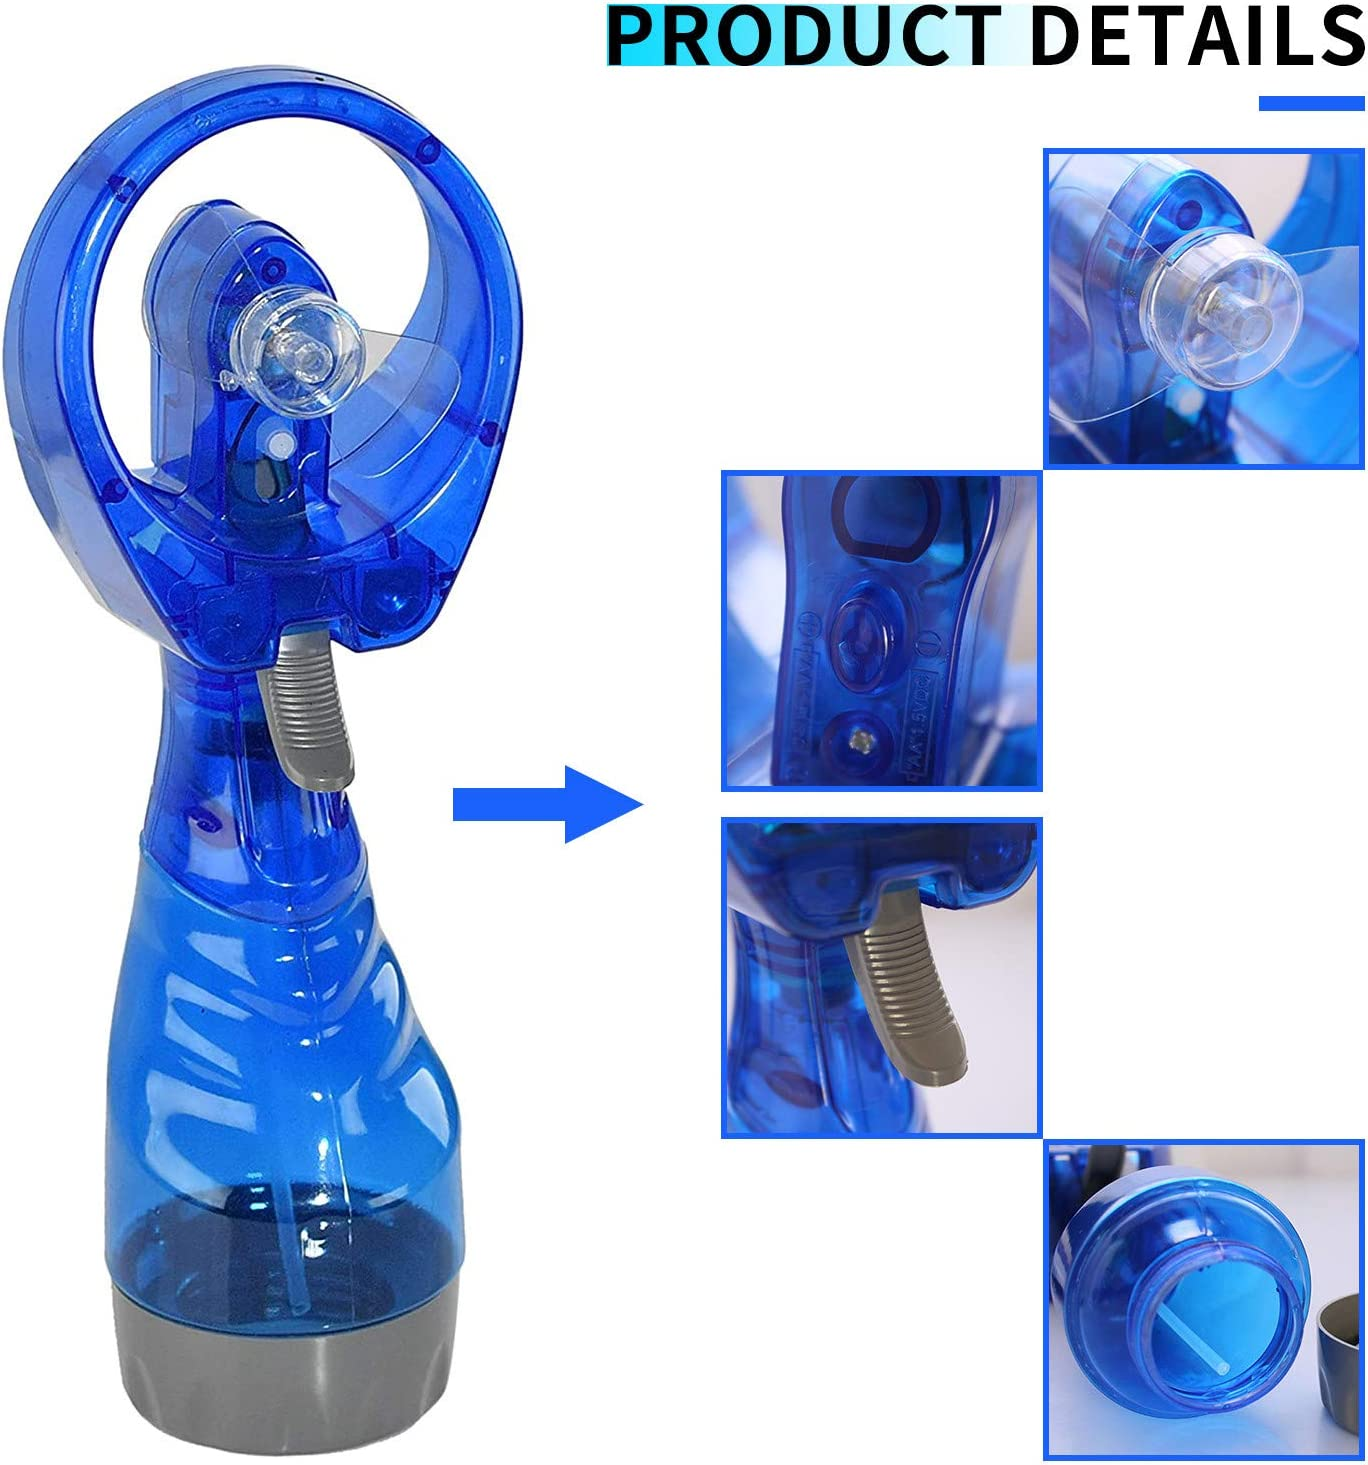 FANFX Handheld Fan with Water Mist Sprayer Portable AA Battery Powered Cooling Fans with Spray Bottle for Home Office Camping Hiking Sports Travel (Blue) Blue